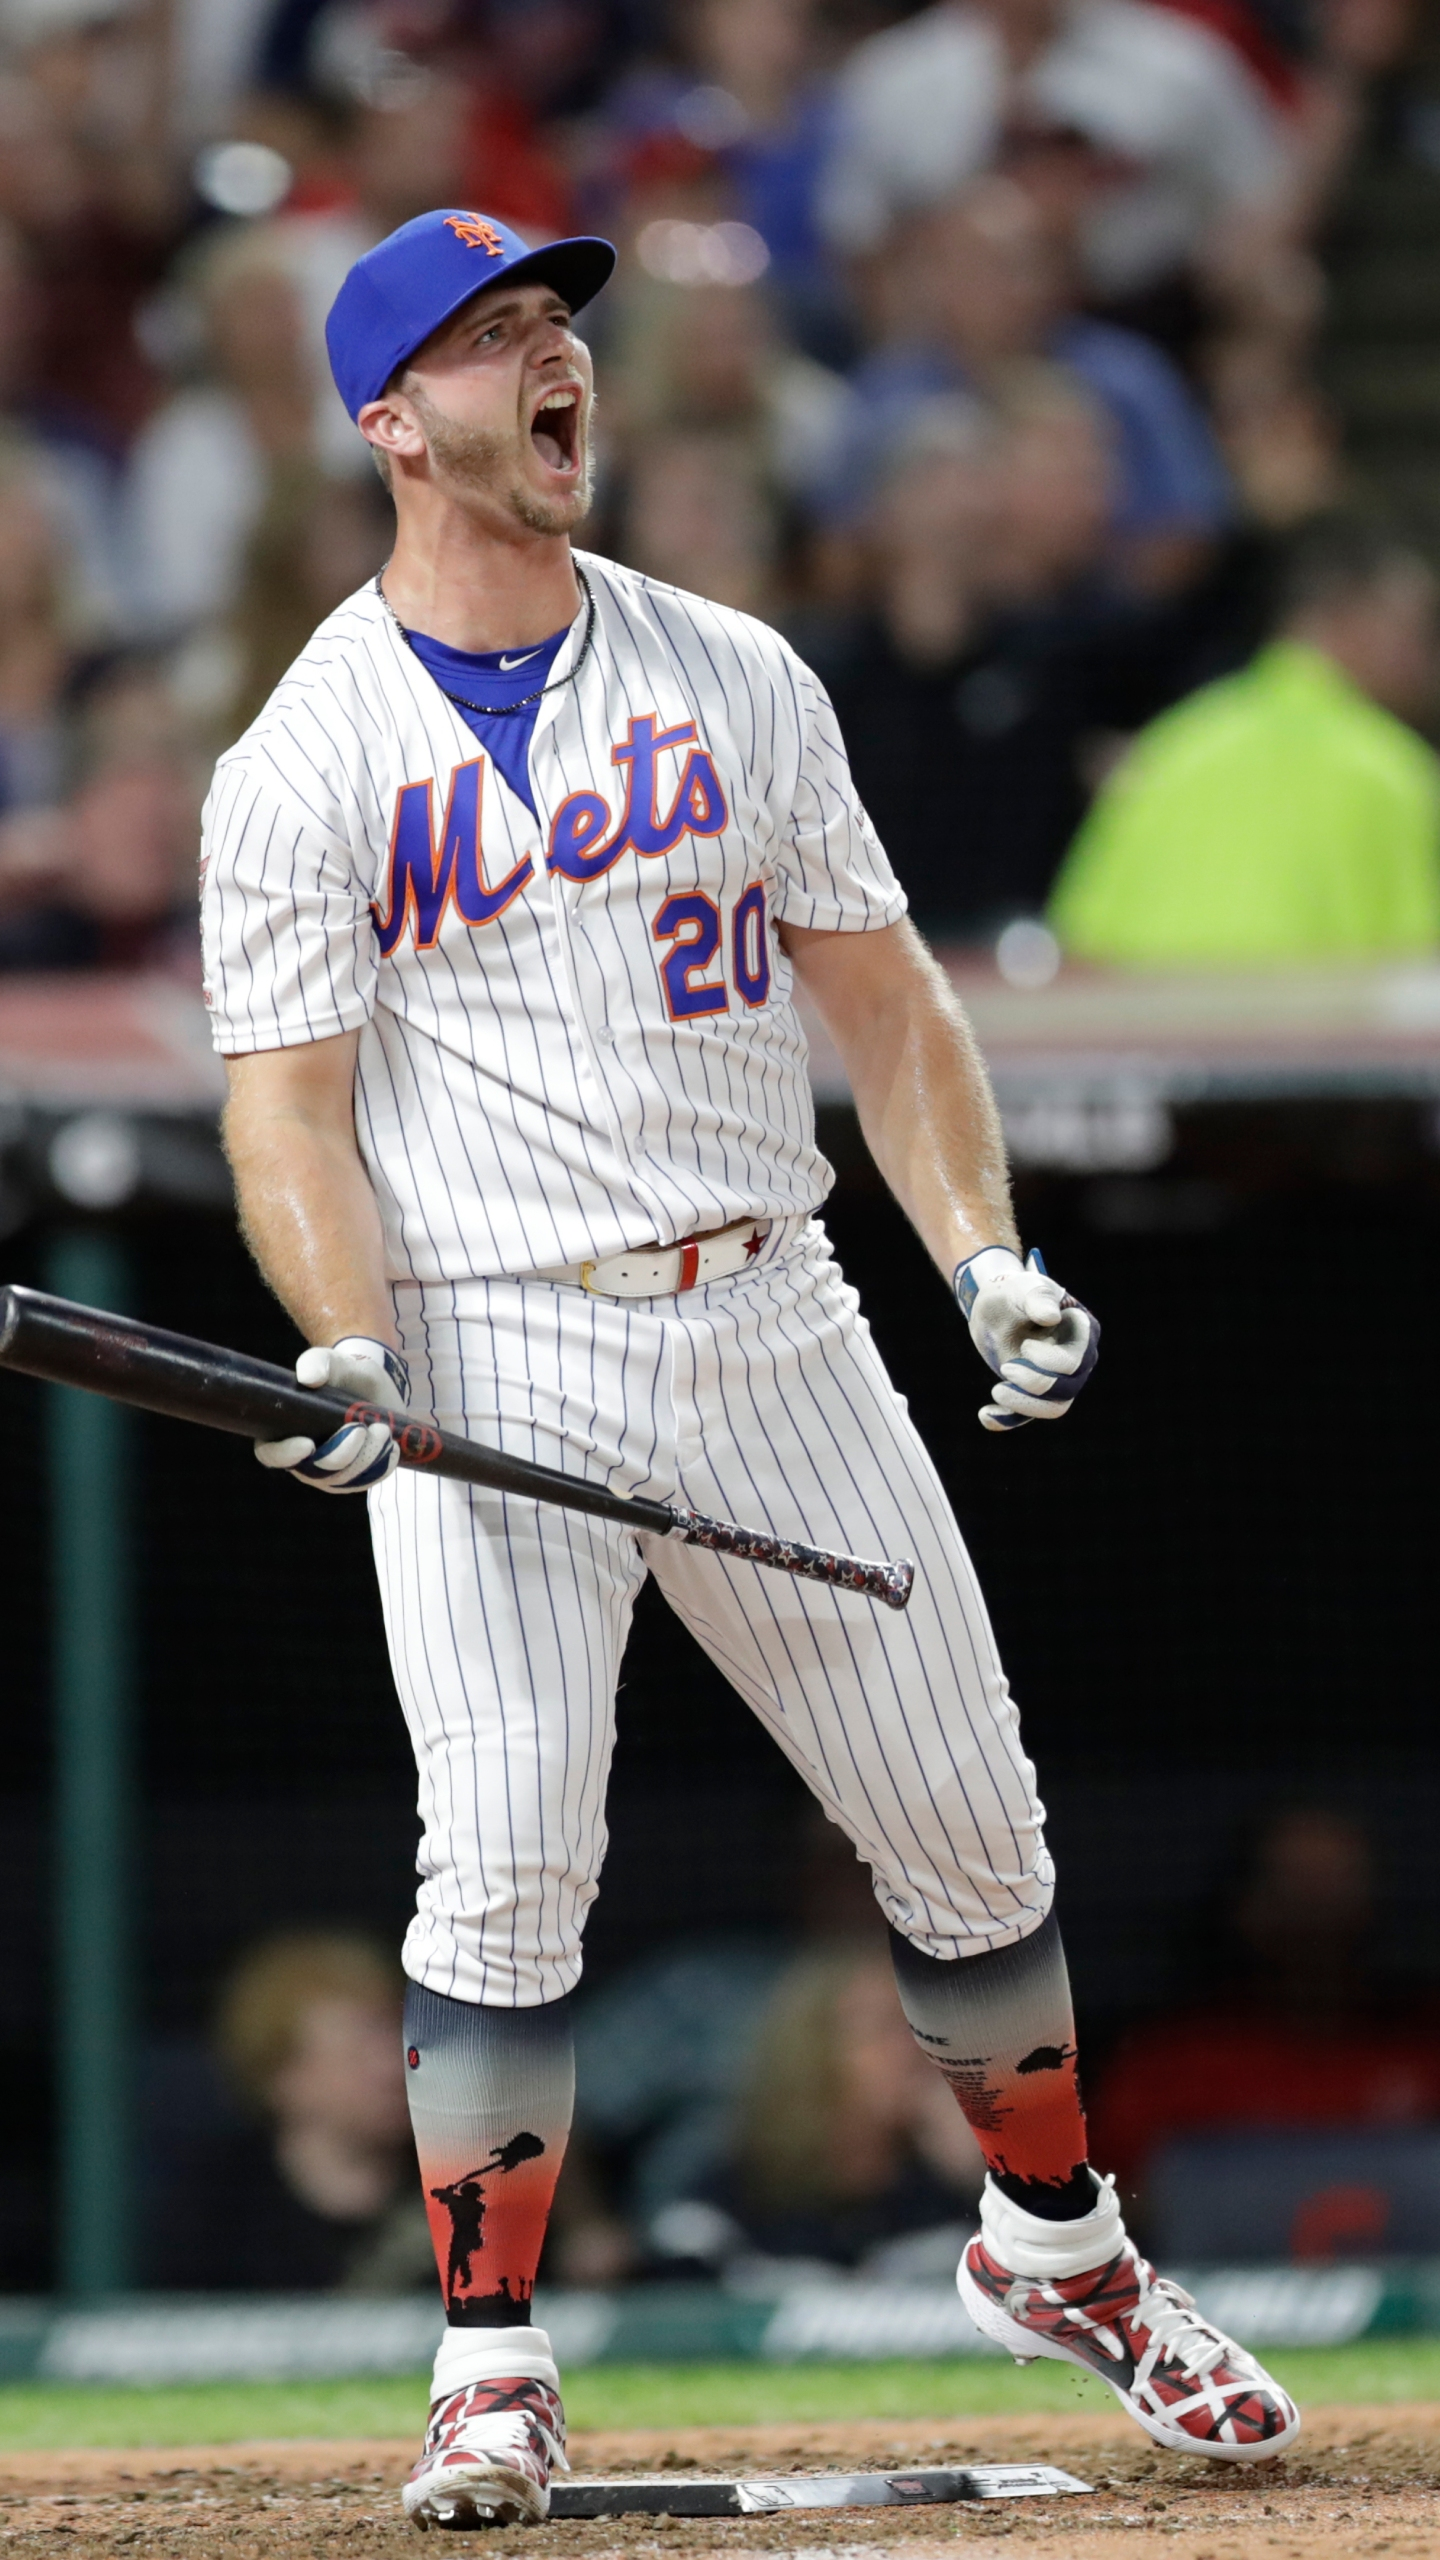 Tampa Native Pete Alonso Wins Home Run Derby Title Wfla